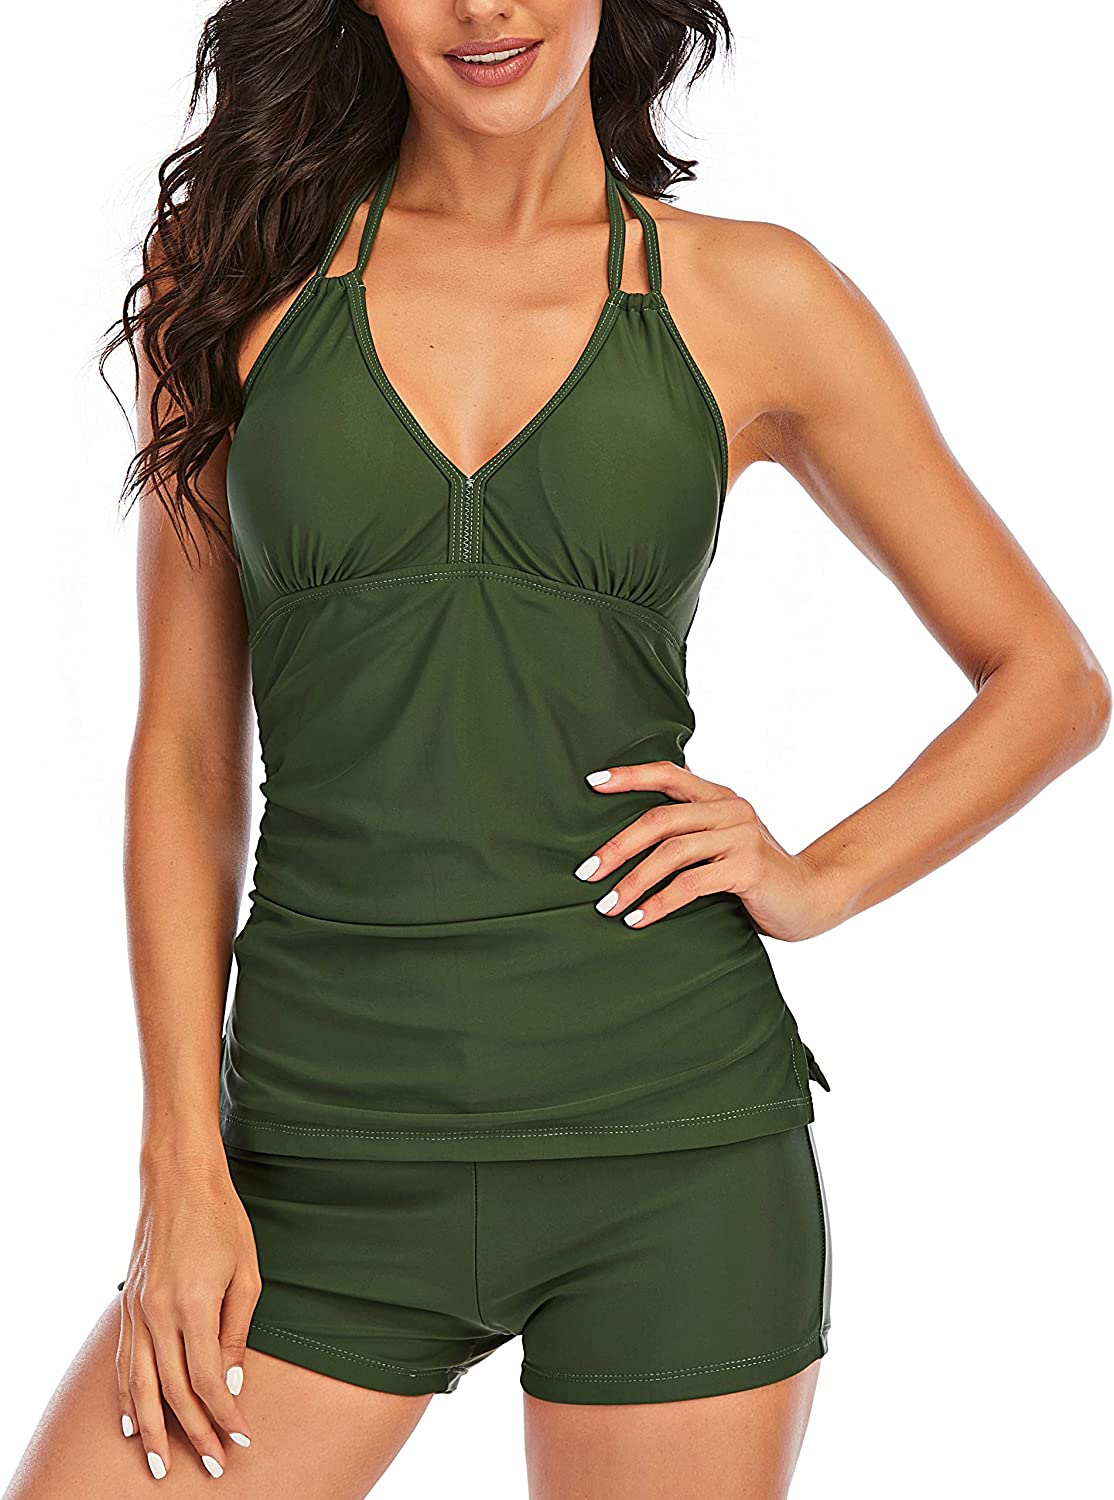 Vivian Women's V Neck Tankini Set Halter Tommy Control Tankini Top with Boyshorts Bottom Ruched Two Piece Bathing Suits